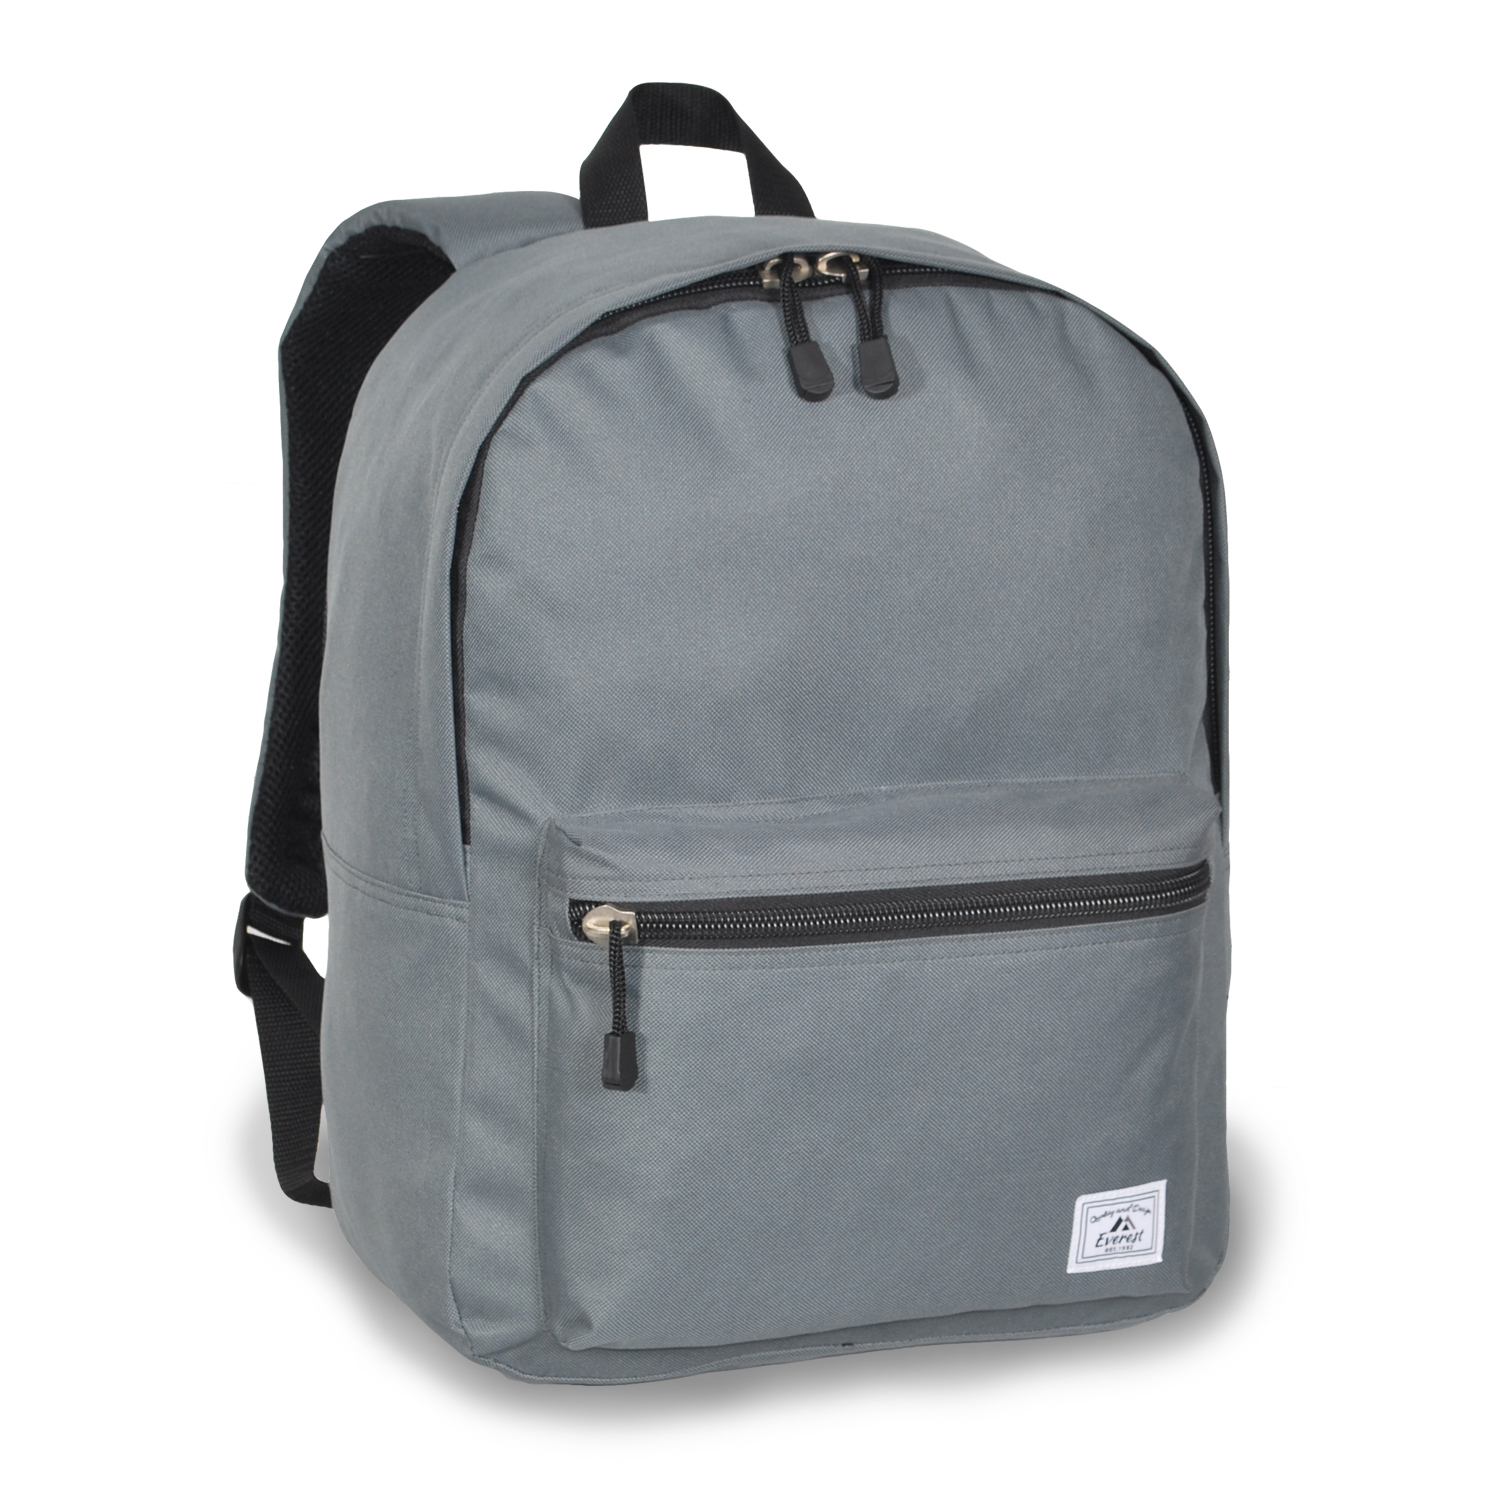 e5608ec53896 Everest Deluxe Laptop Backpack - Free Shipping